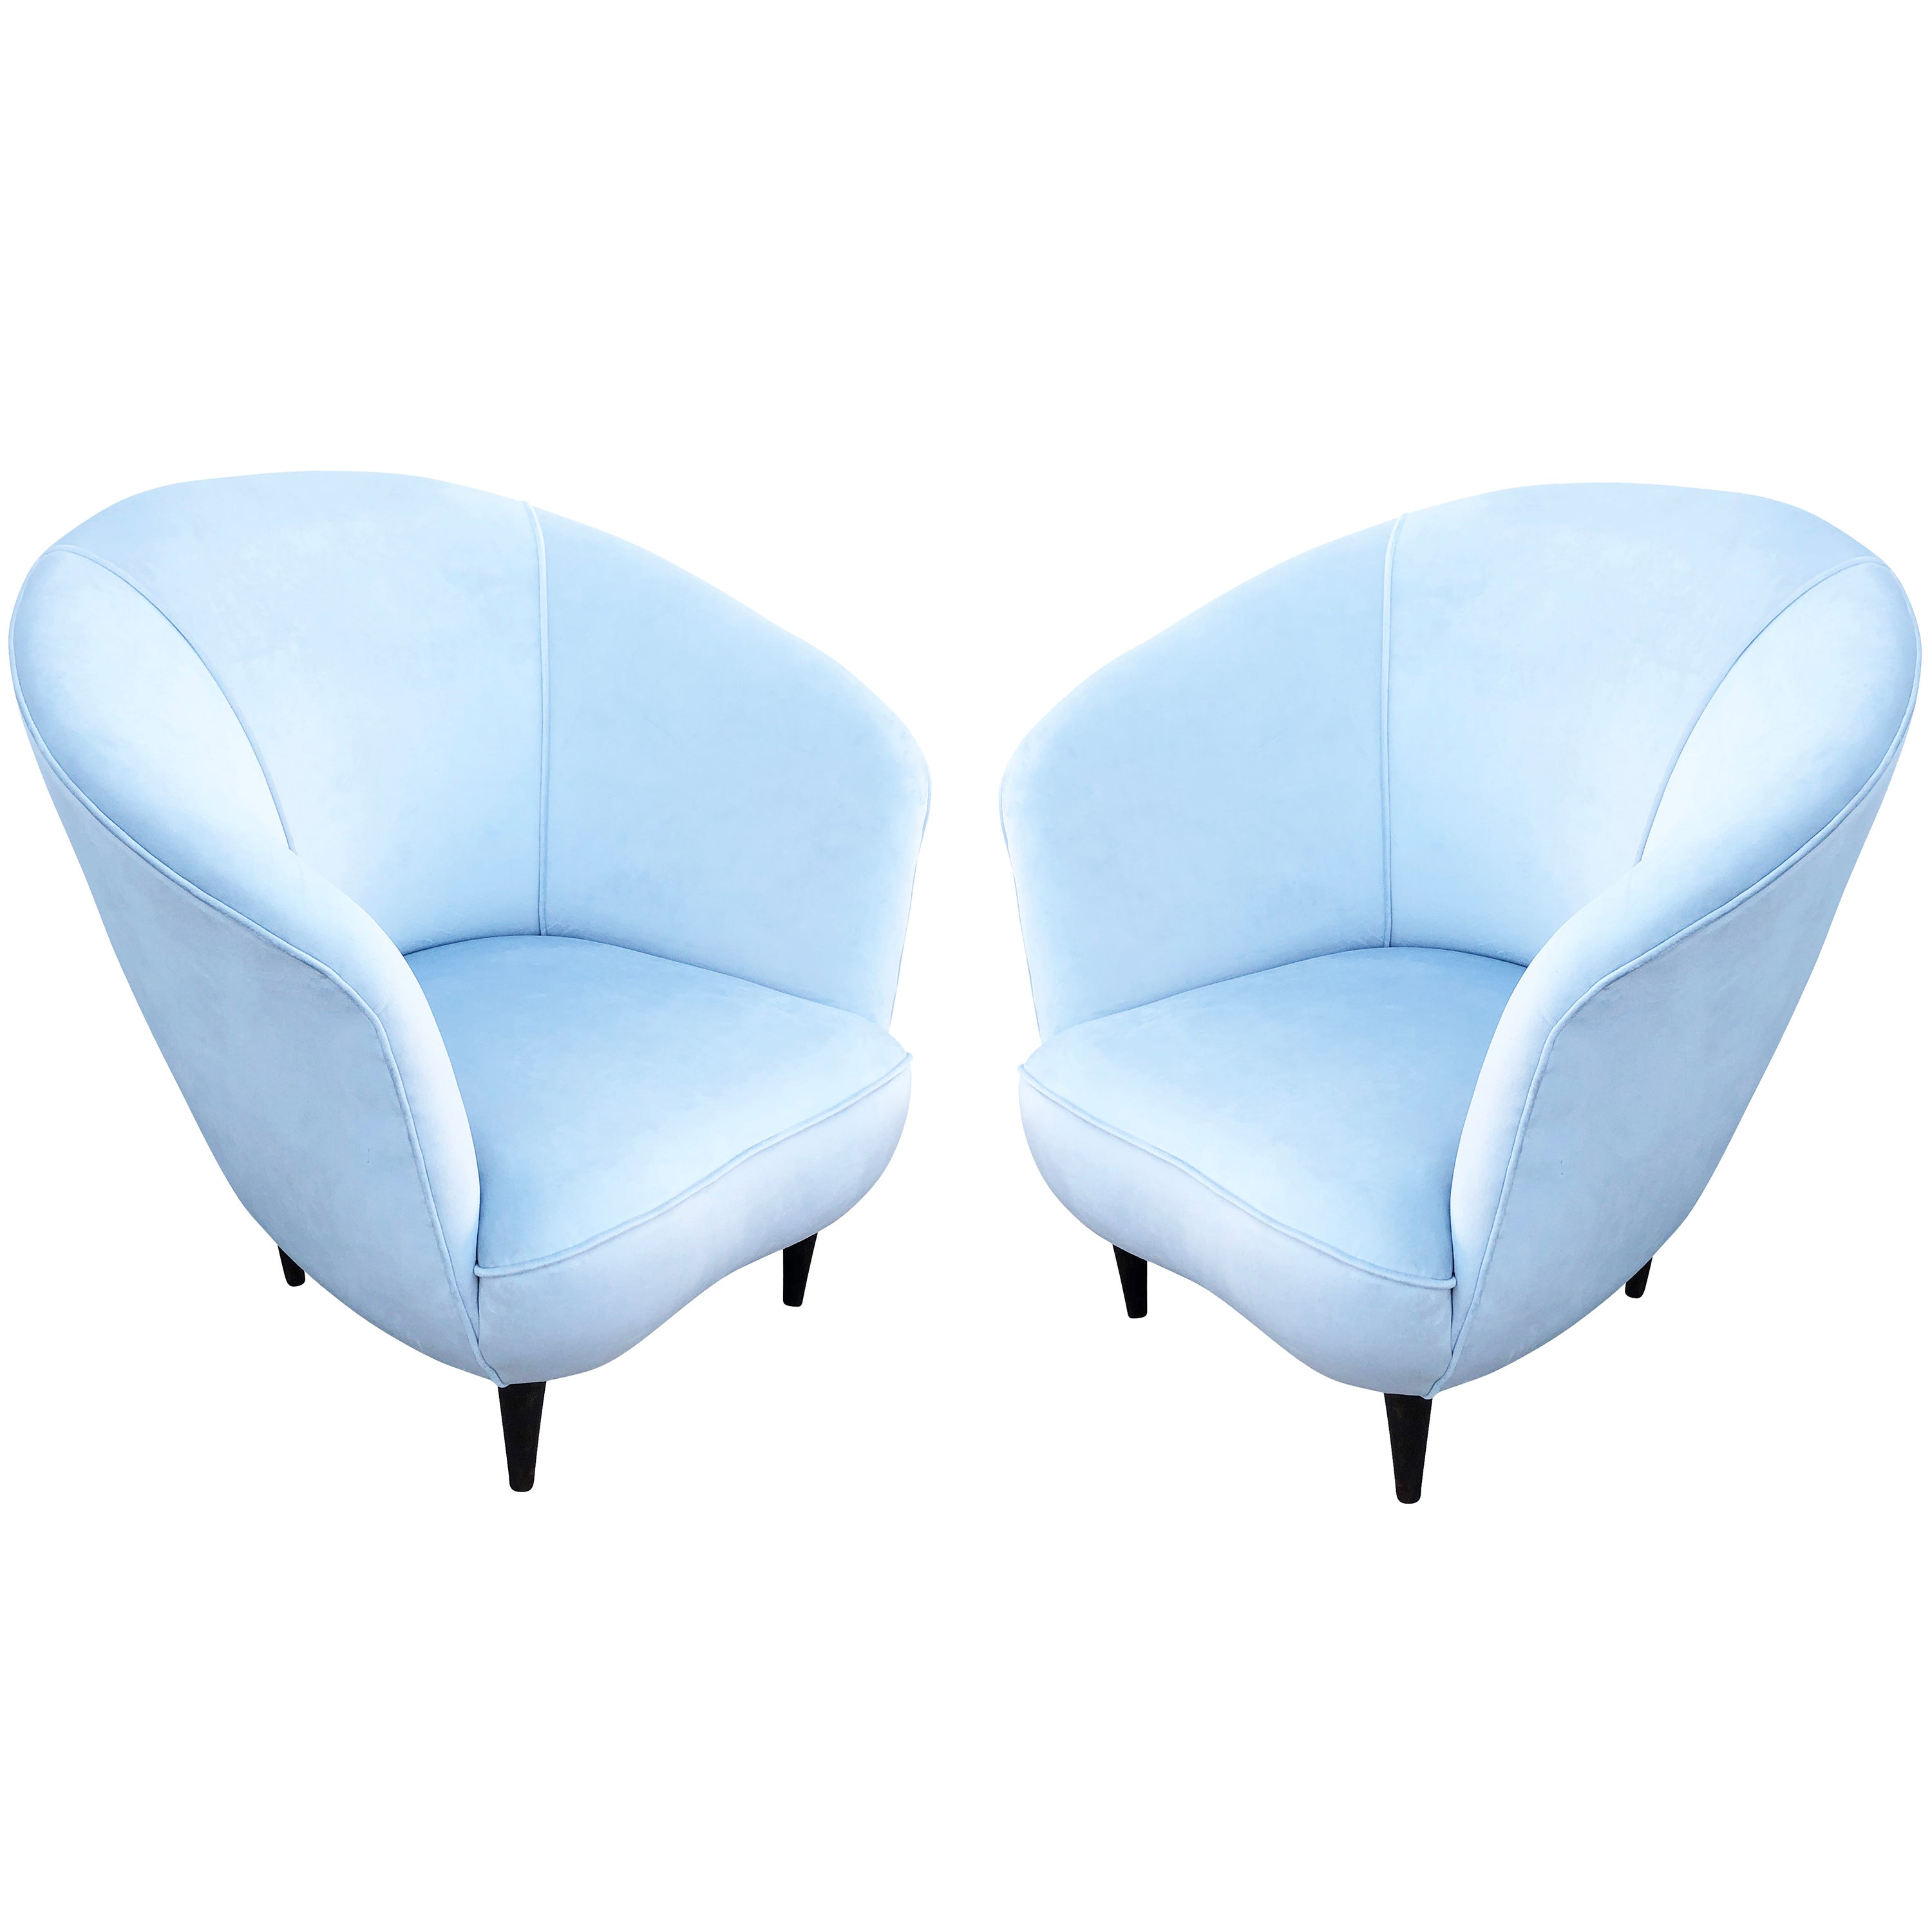 Pair of Rounded Italian Midcentury Lounge Chairs